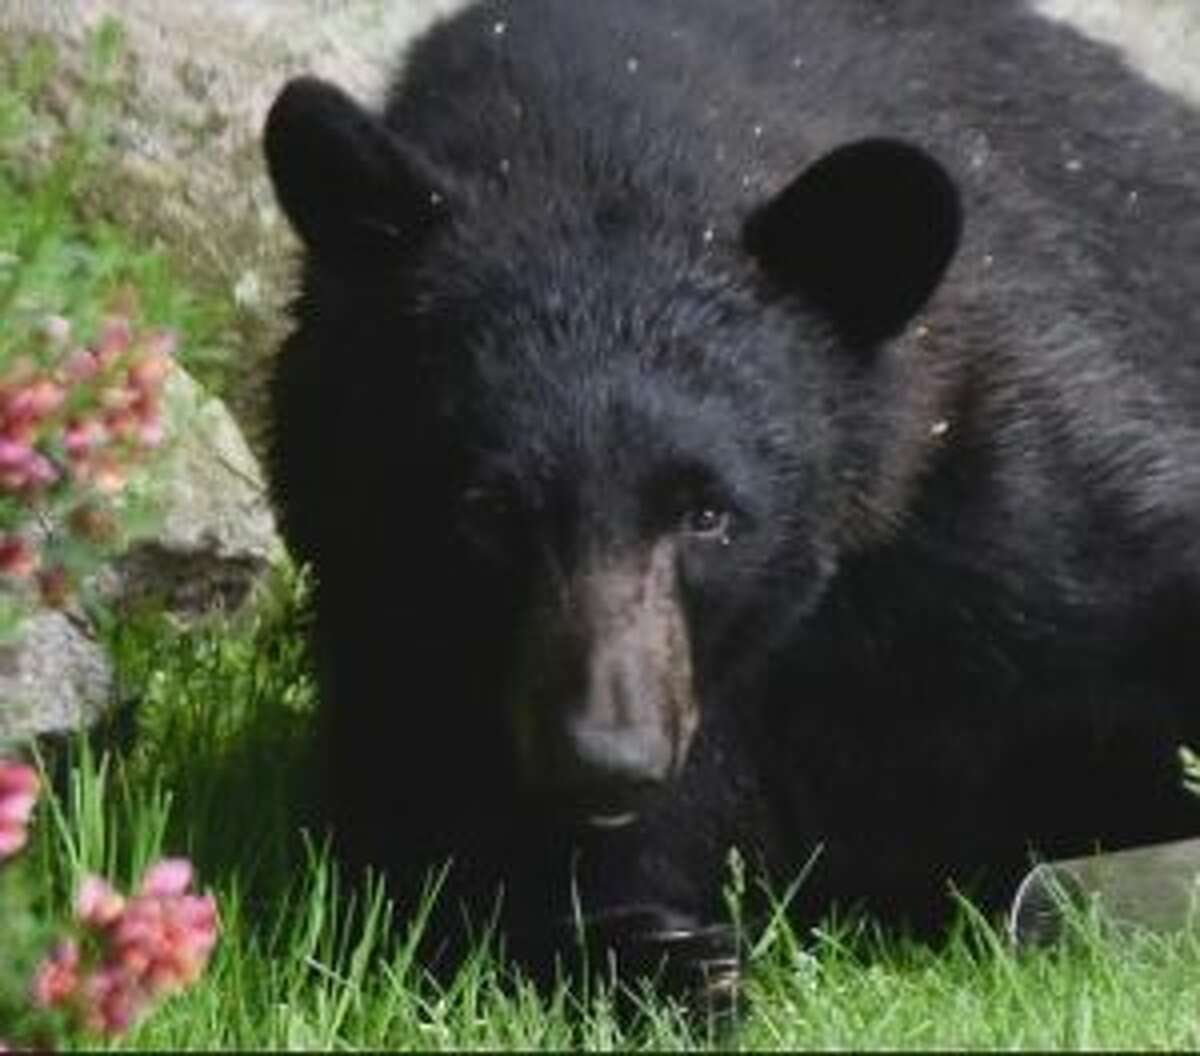 A bear was spotted in Wilton near Cranbury Park in May. Karen Reid/Contributed photo